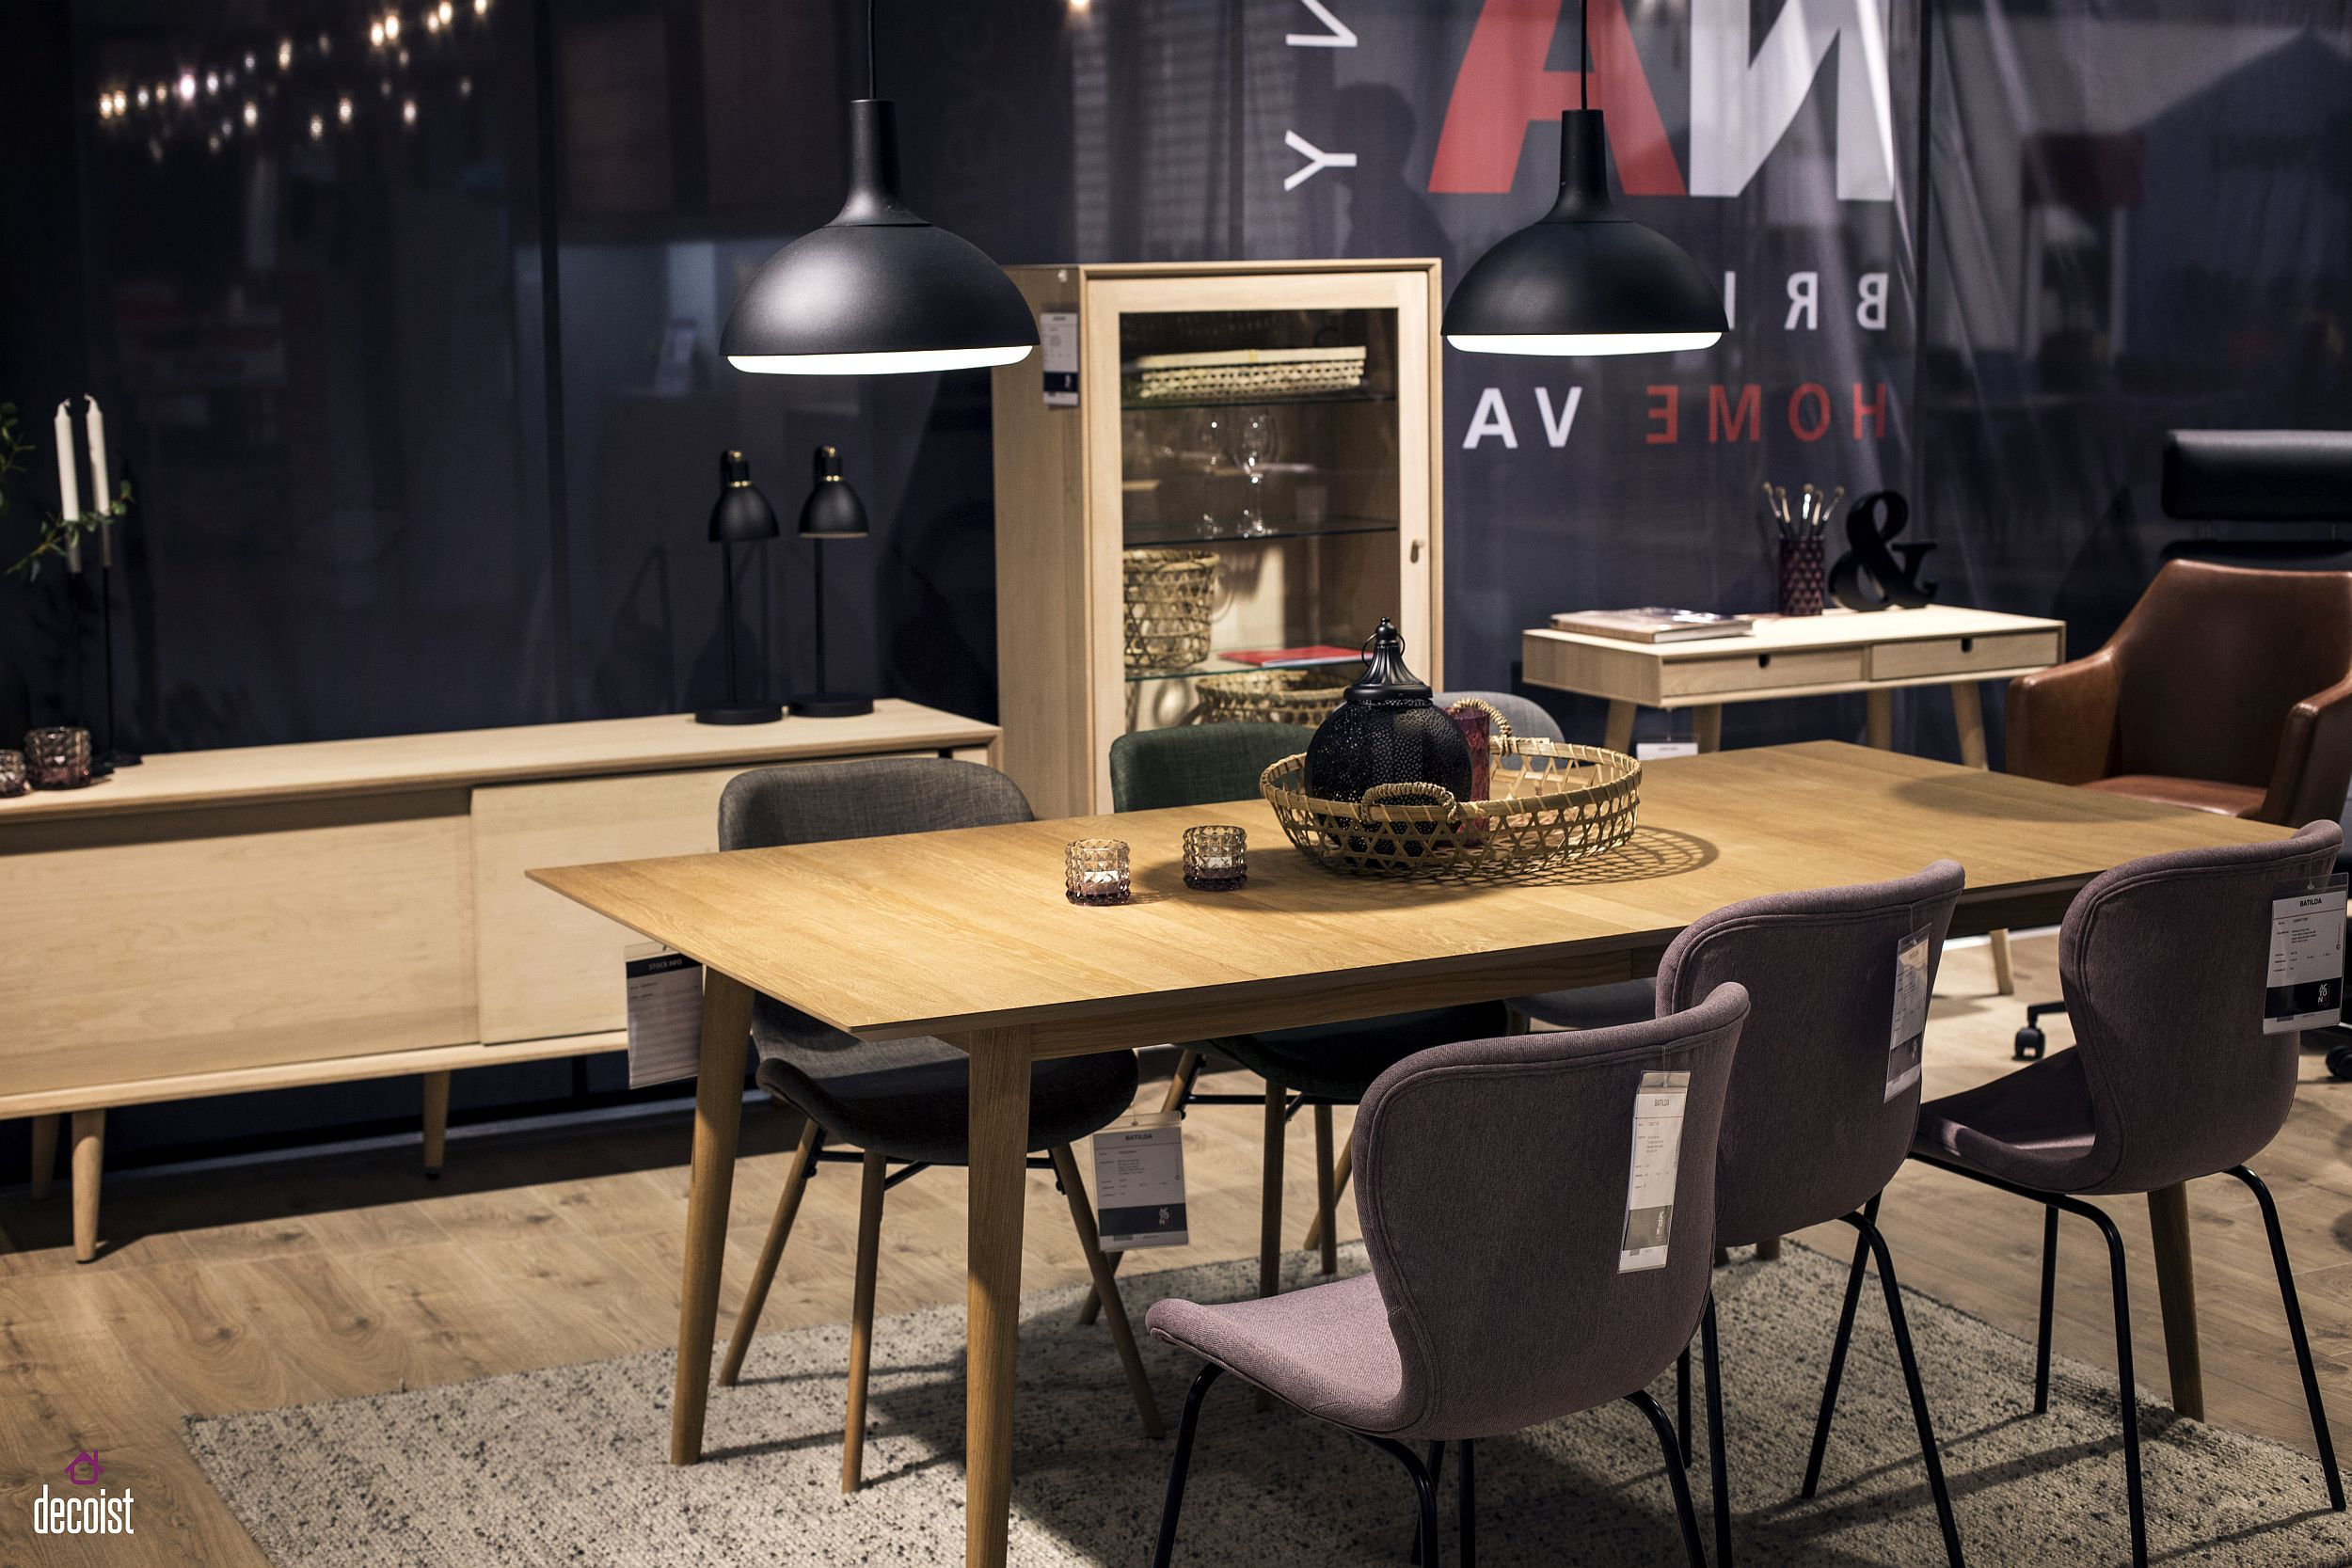 Combine-the-rectangular-wooden-dining-table-with-a-matching-sideboard-in-the-dining-space